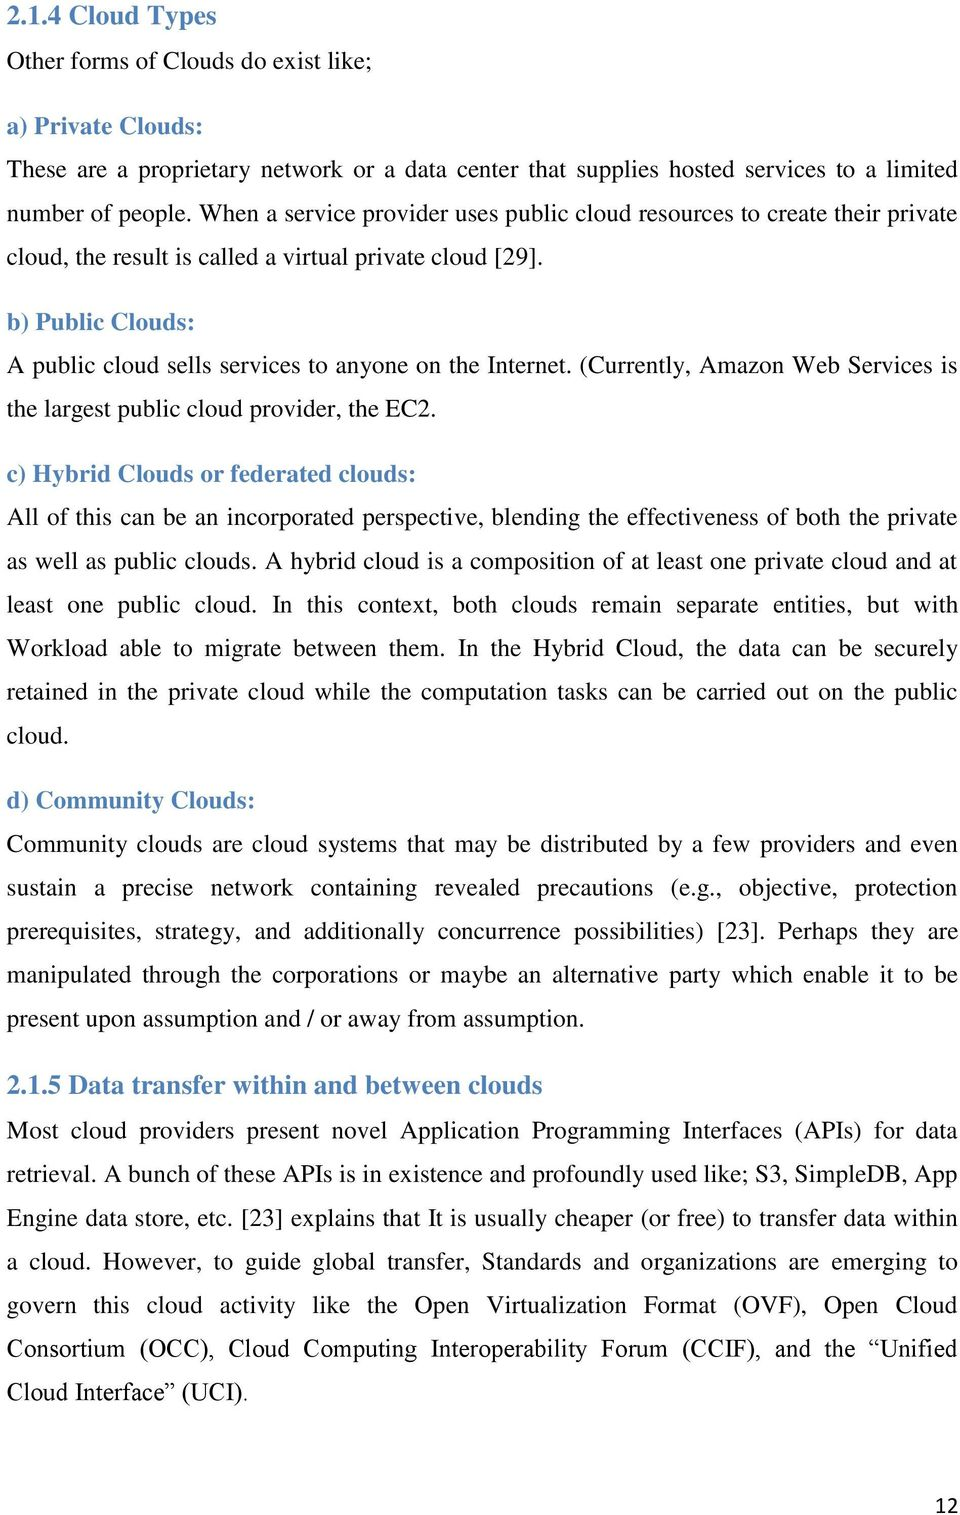 b) Public Clouds: A public cloud sells services to anyone on the Internet. (Currently, Amazon Web Services is the largest public cloud provider, the EC2.